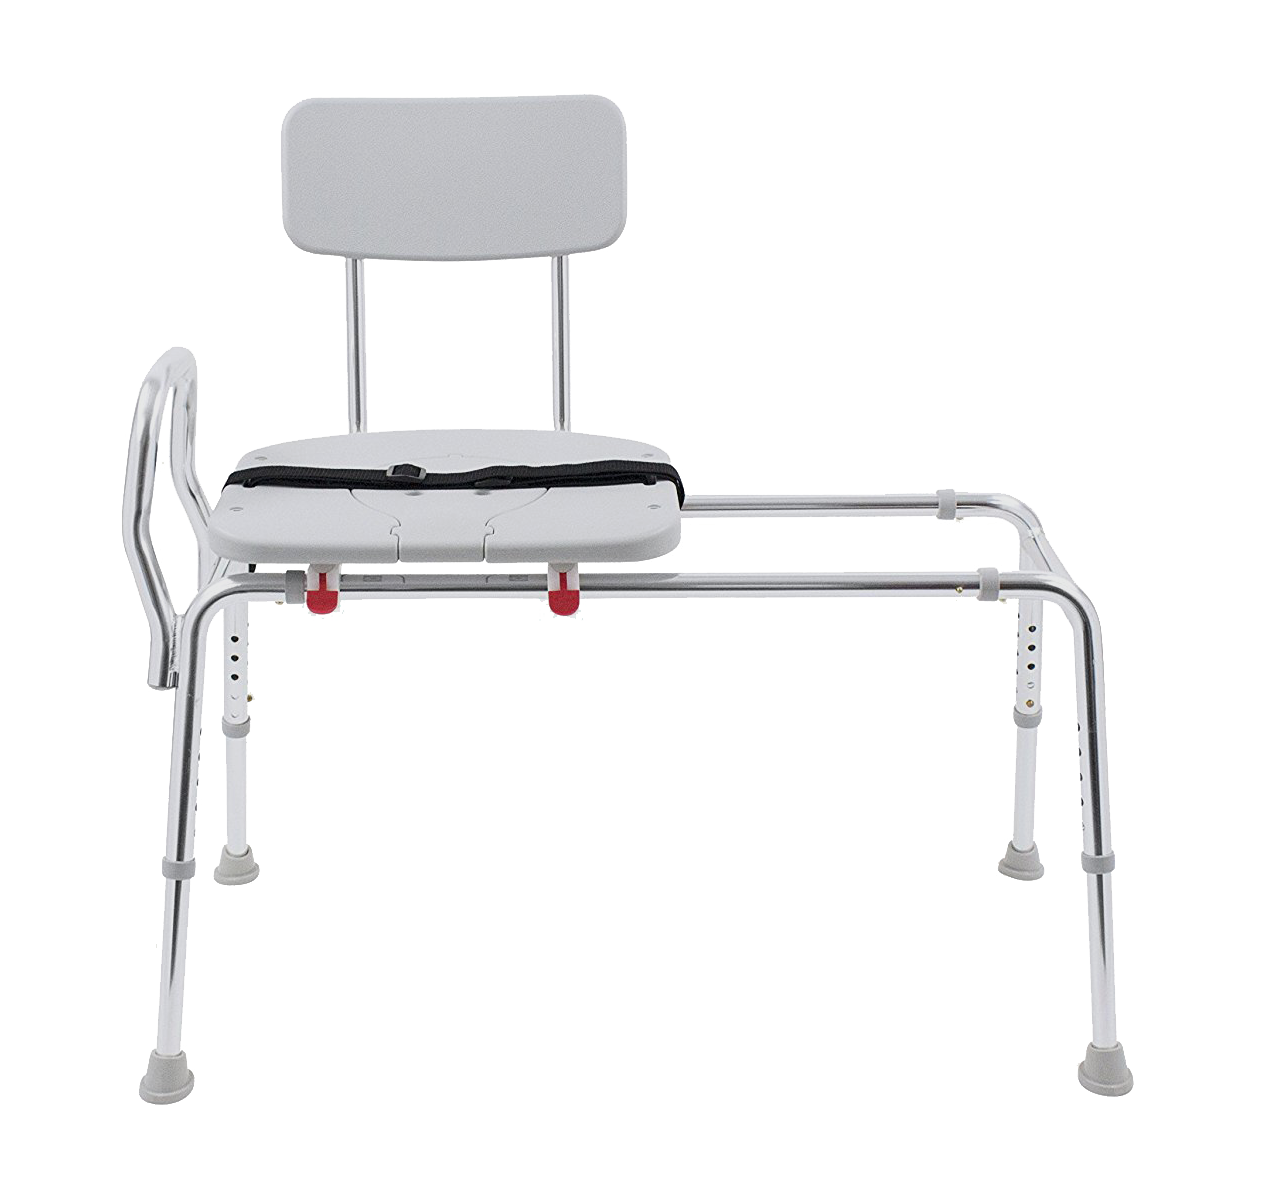 Snap n save classic sliding transfer bench with Sliding transfer bench